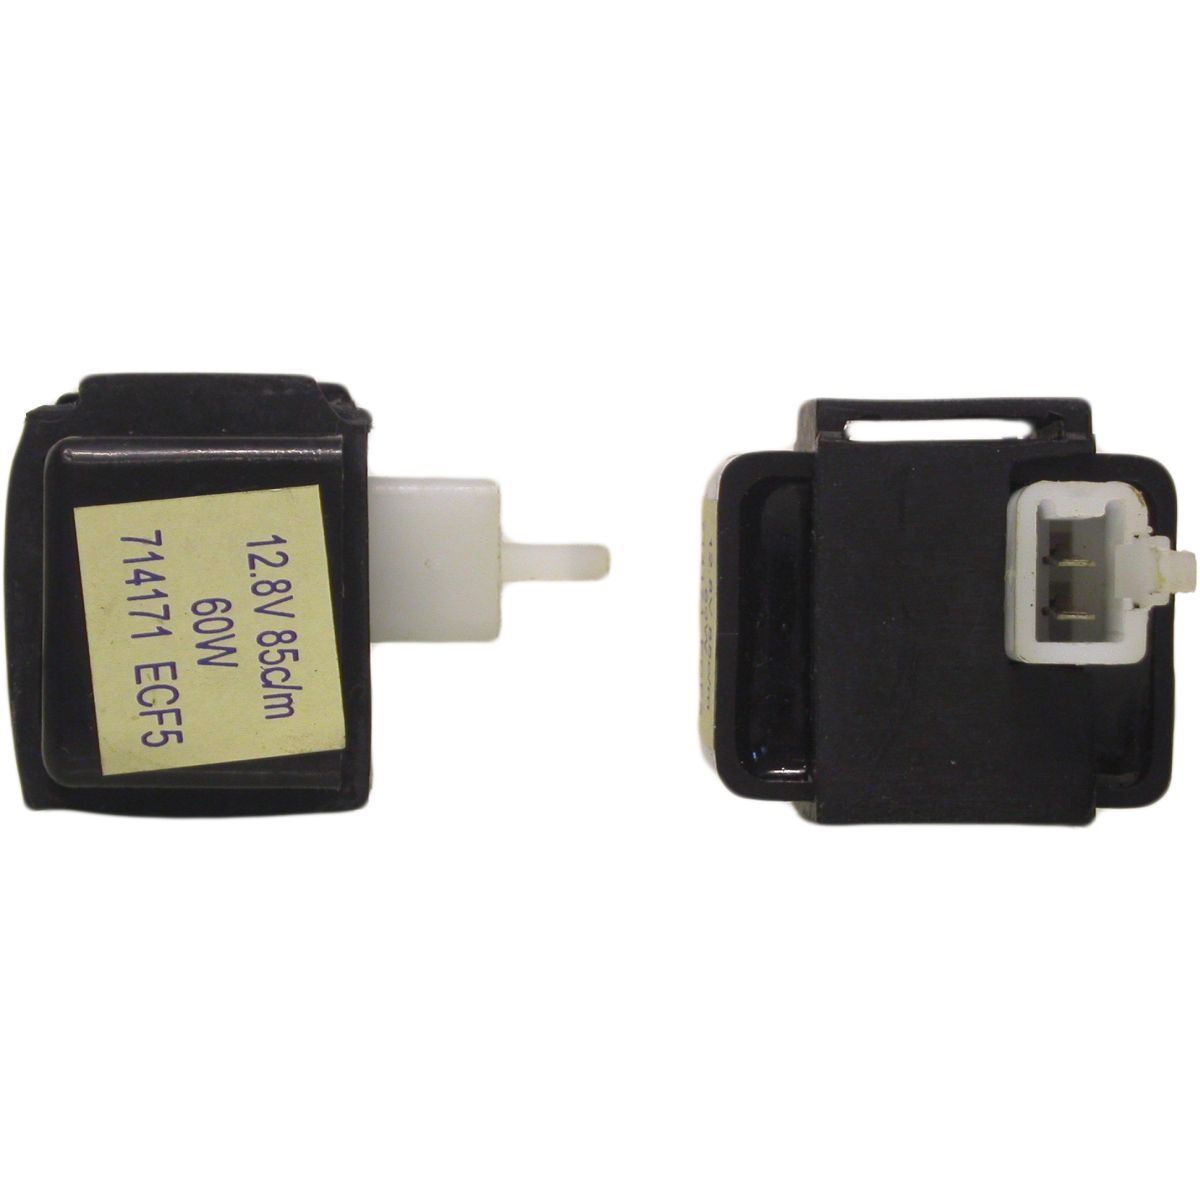 GV75A Half Faired Indicator Relay for 1996 Suzuki GSF 1200 ST Bandit SACS